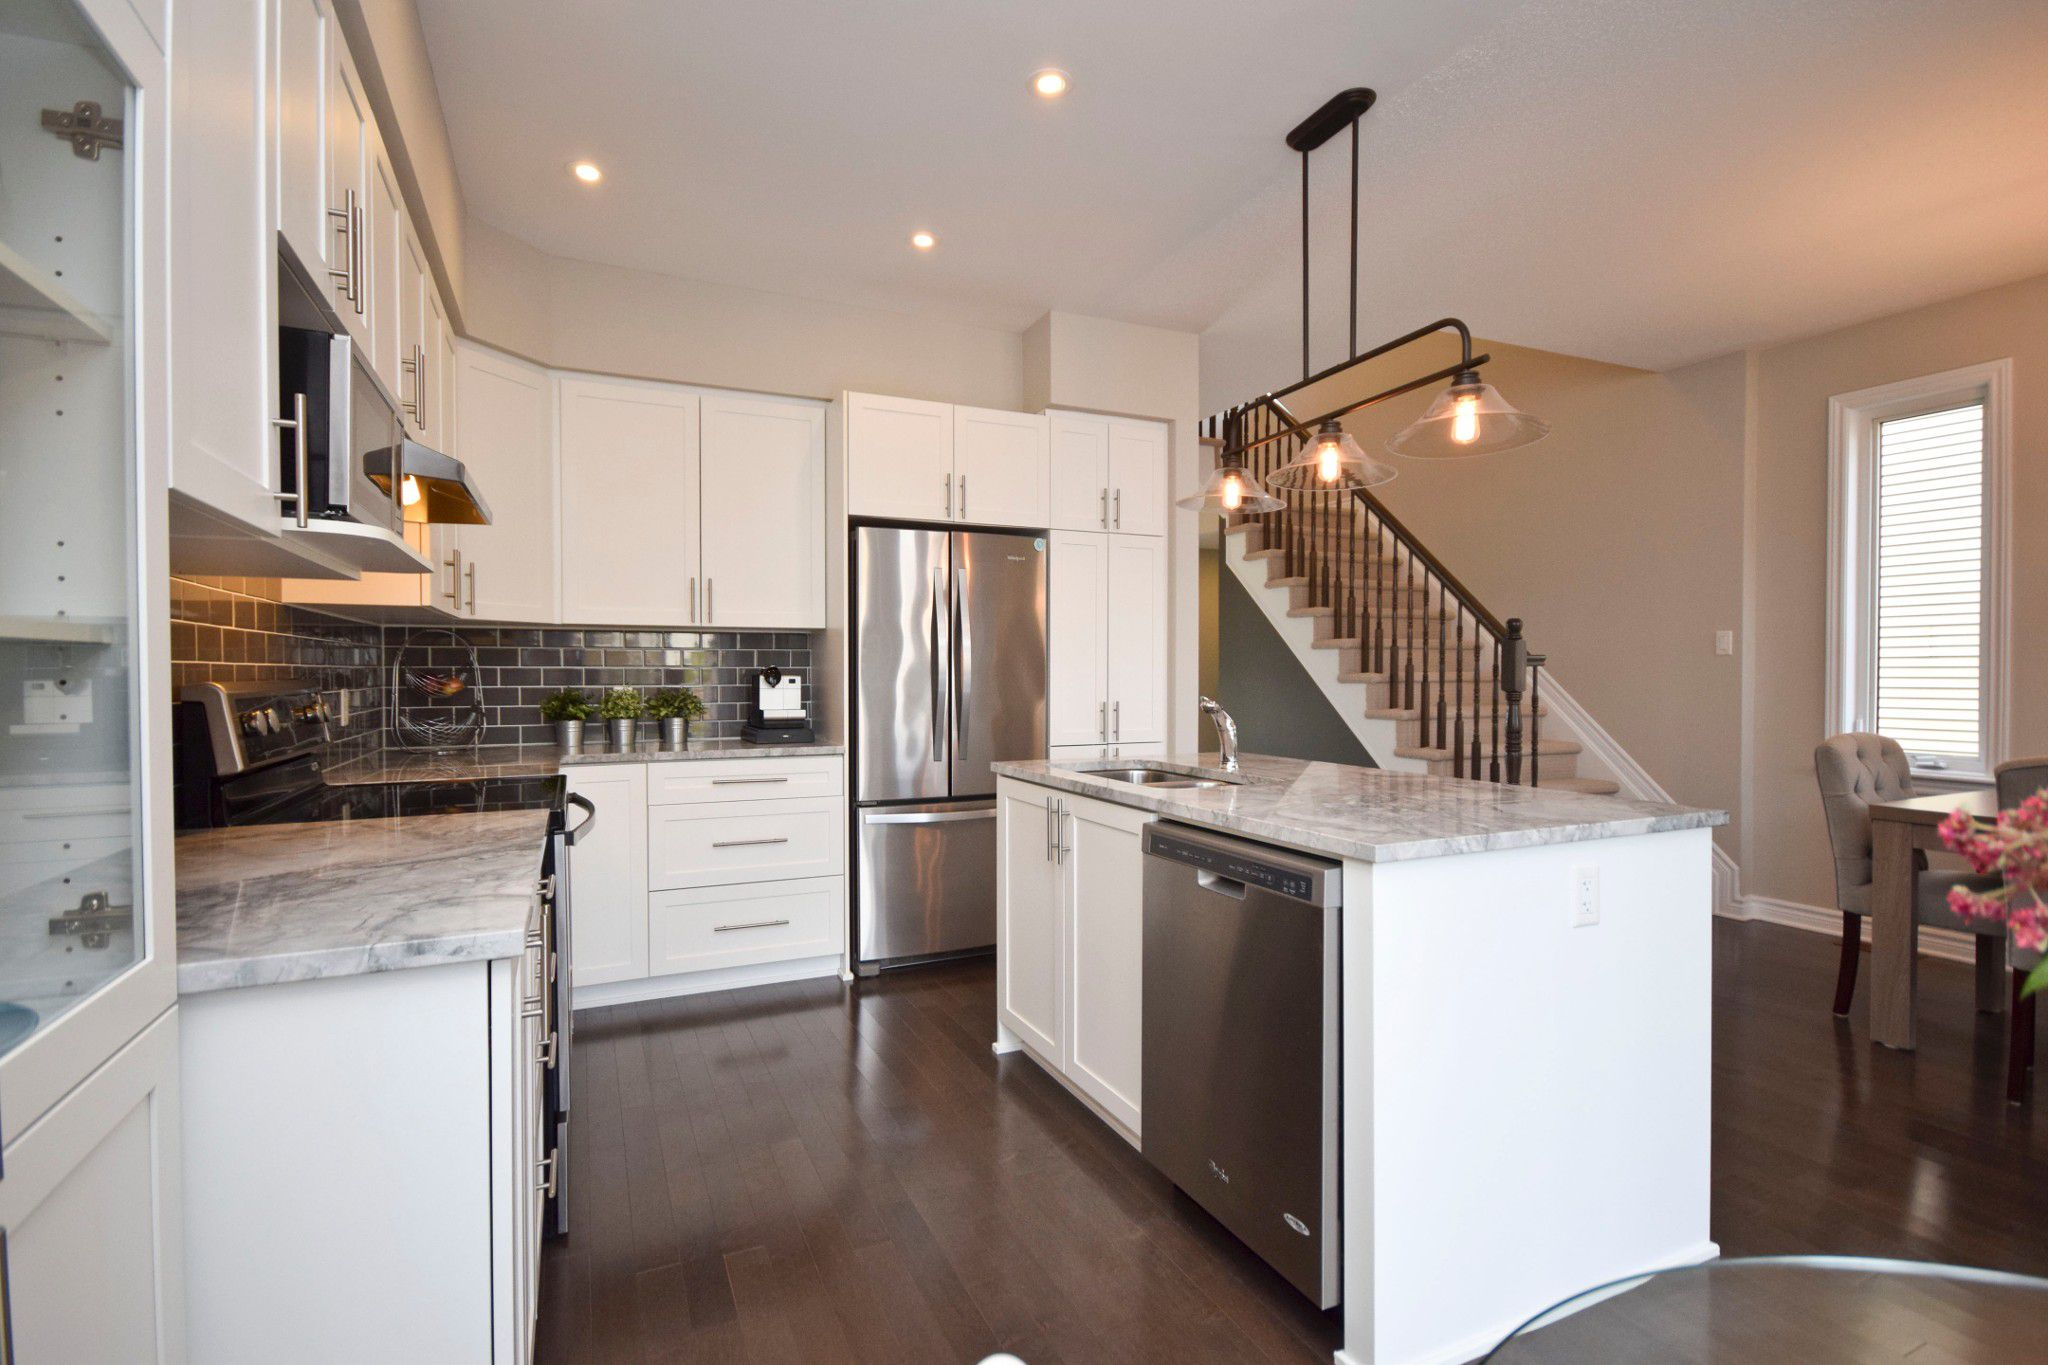 Photo 19: Photos: 131 Popplewell Crescent in Ottawa: Cedargrove / Fraserdale House for sale (Barrhaven)  : MLS®# 1130335